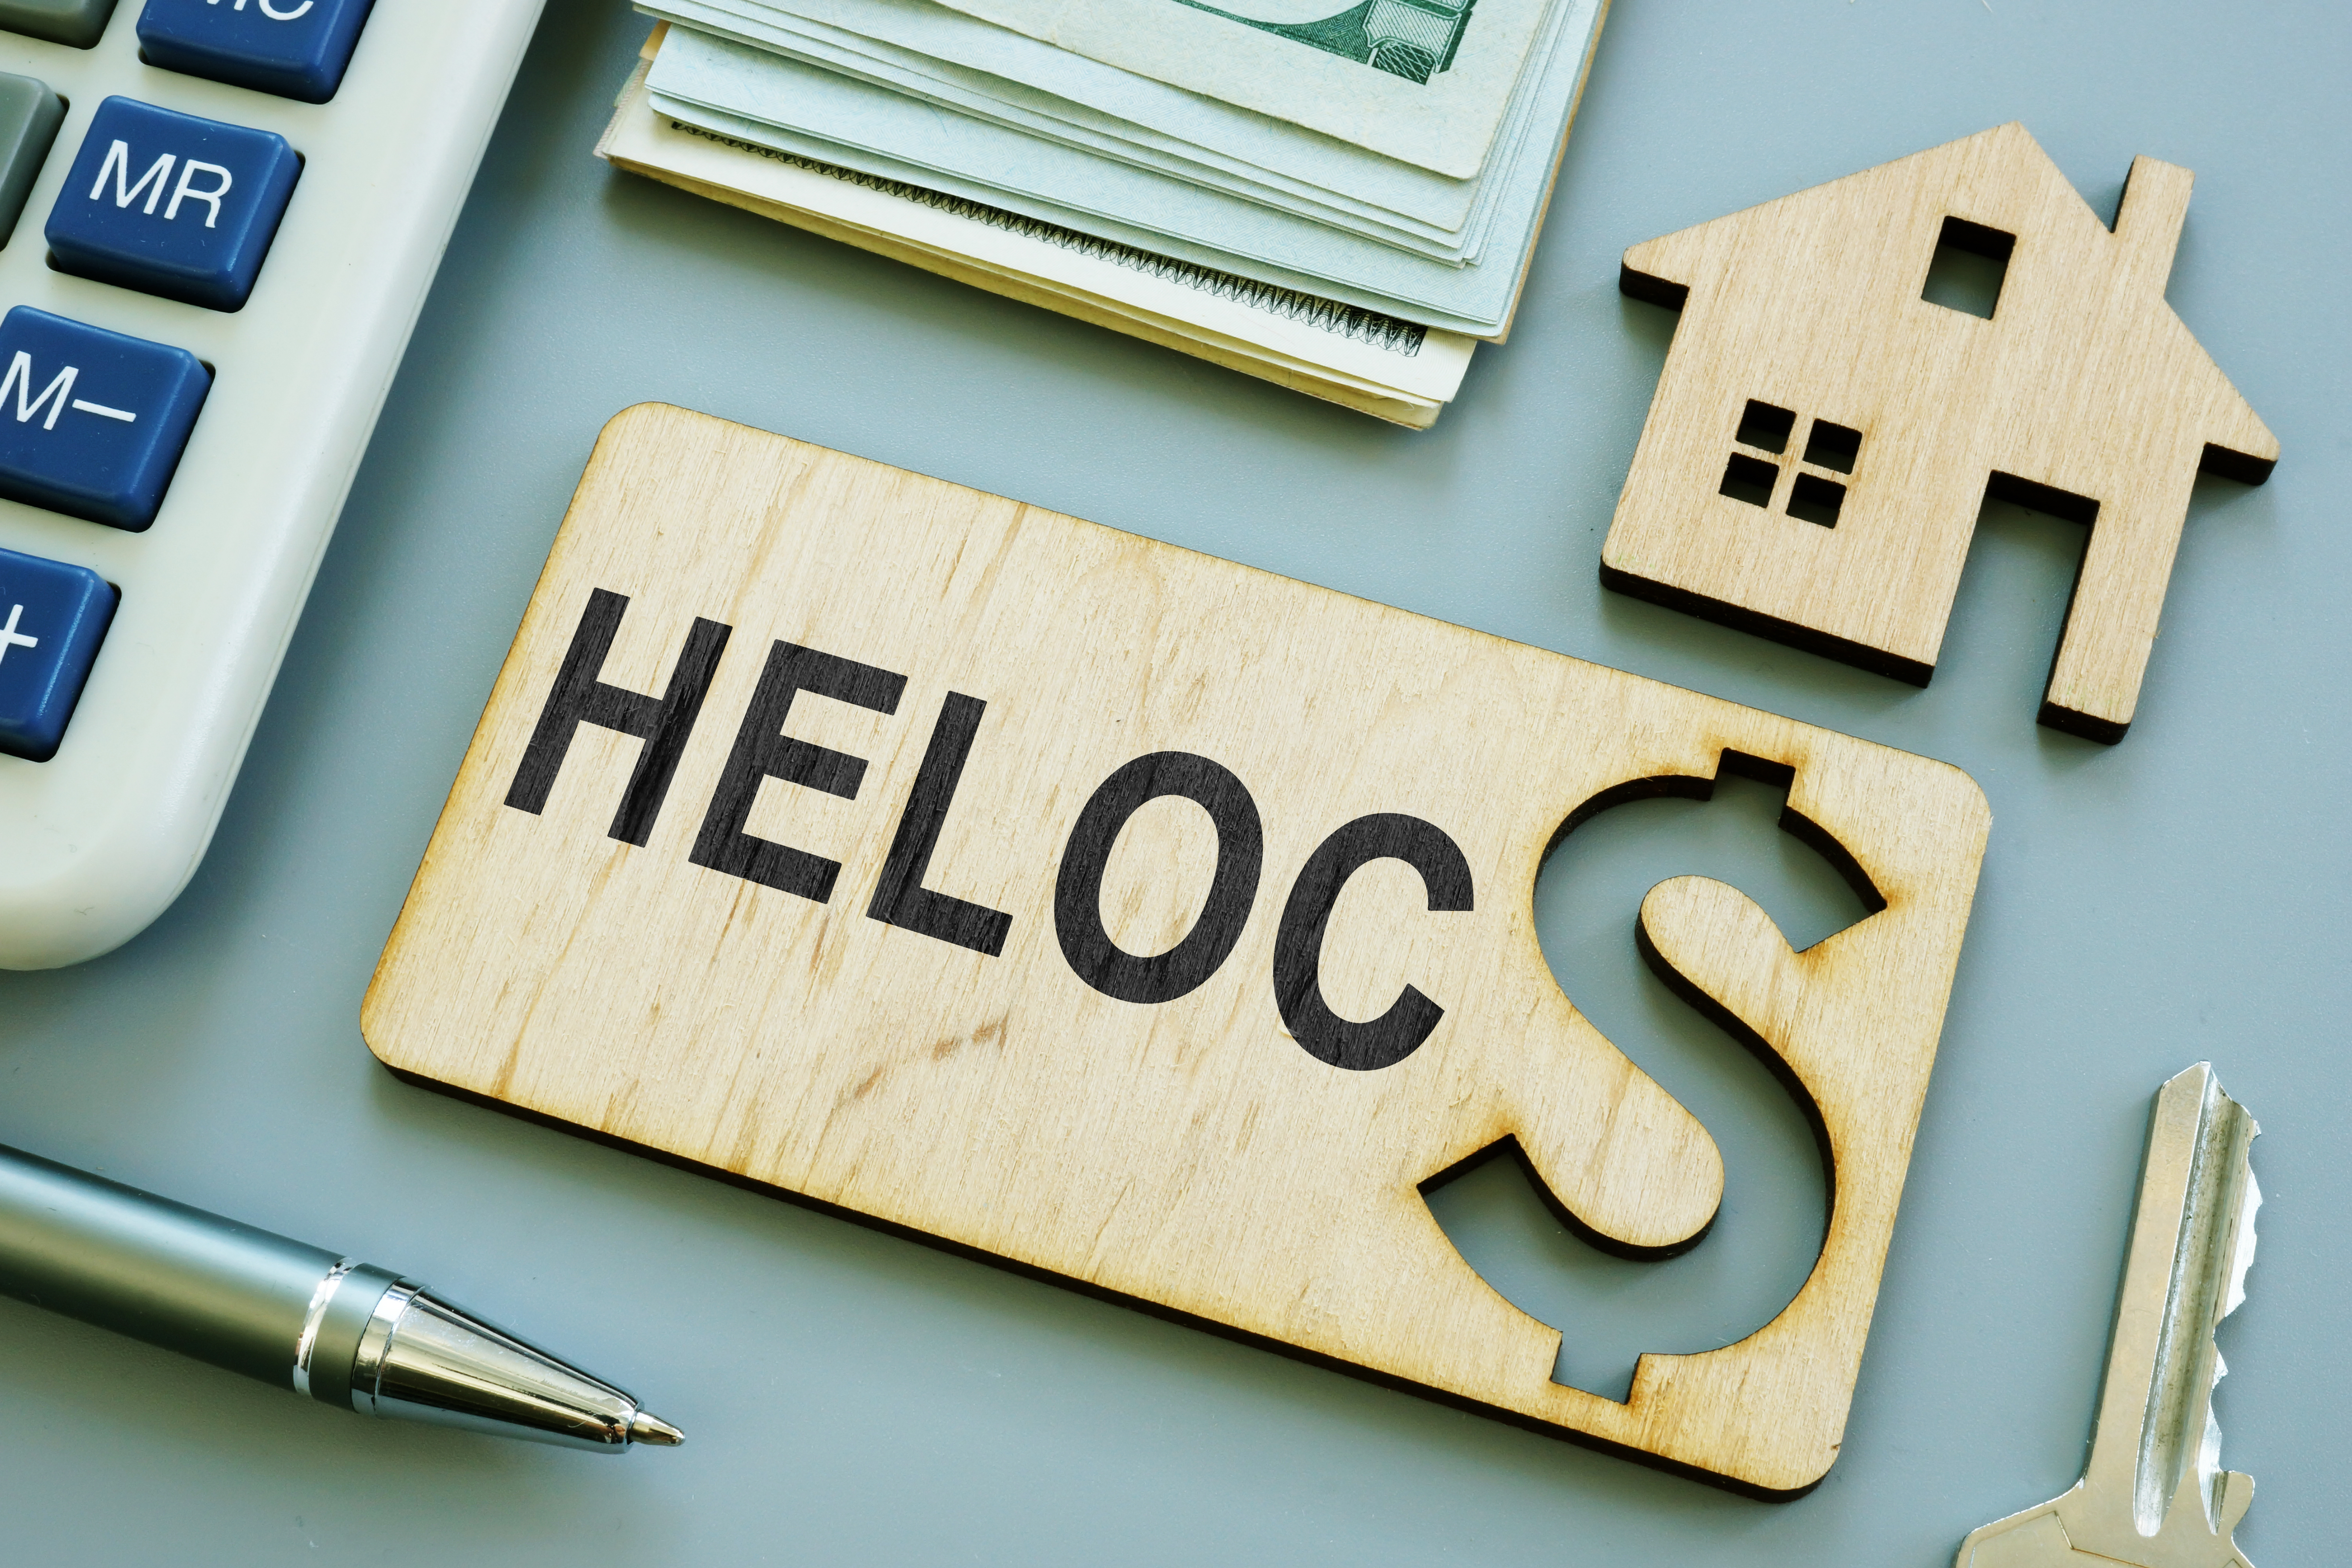 How to Optimize HELOC Collections to Help Customers and Reduce Losses